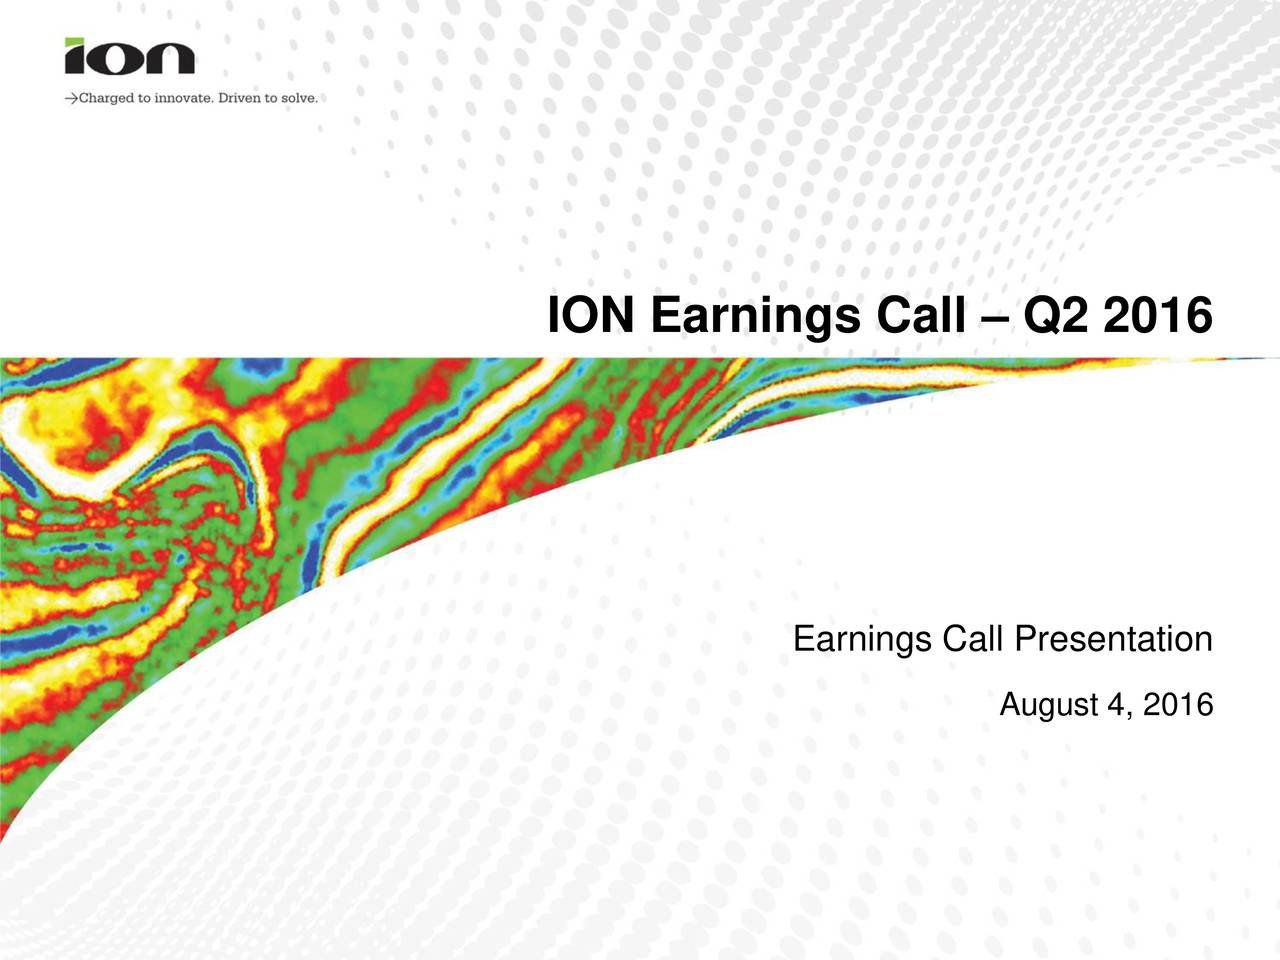 Earnings Call Presentation August 4, 2016